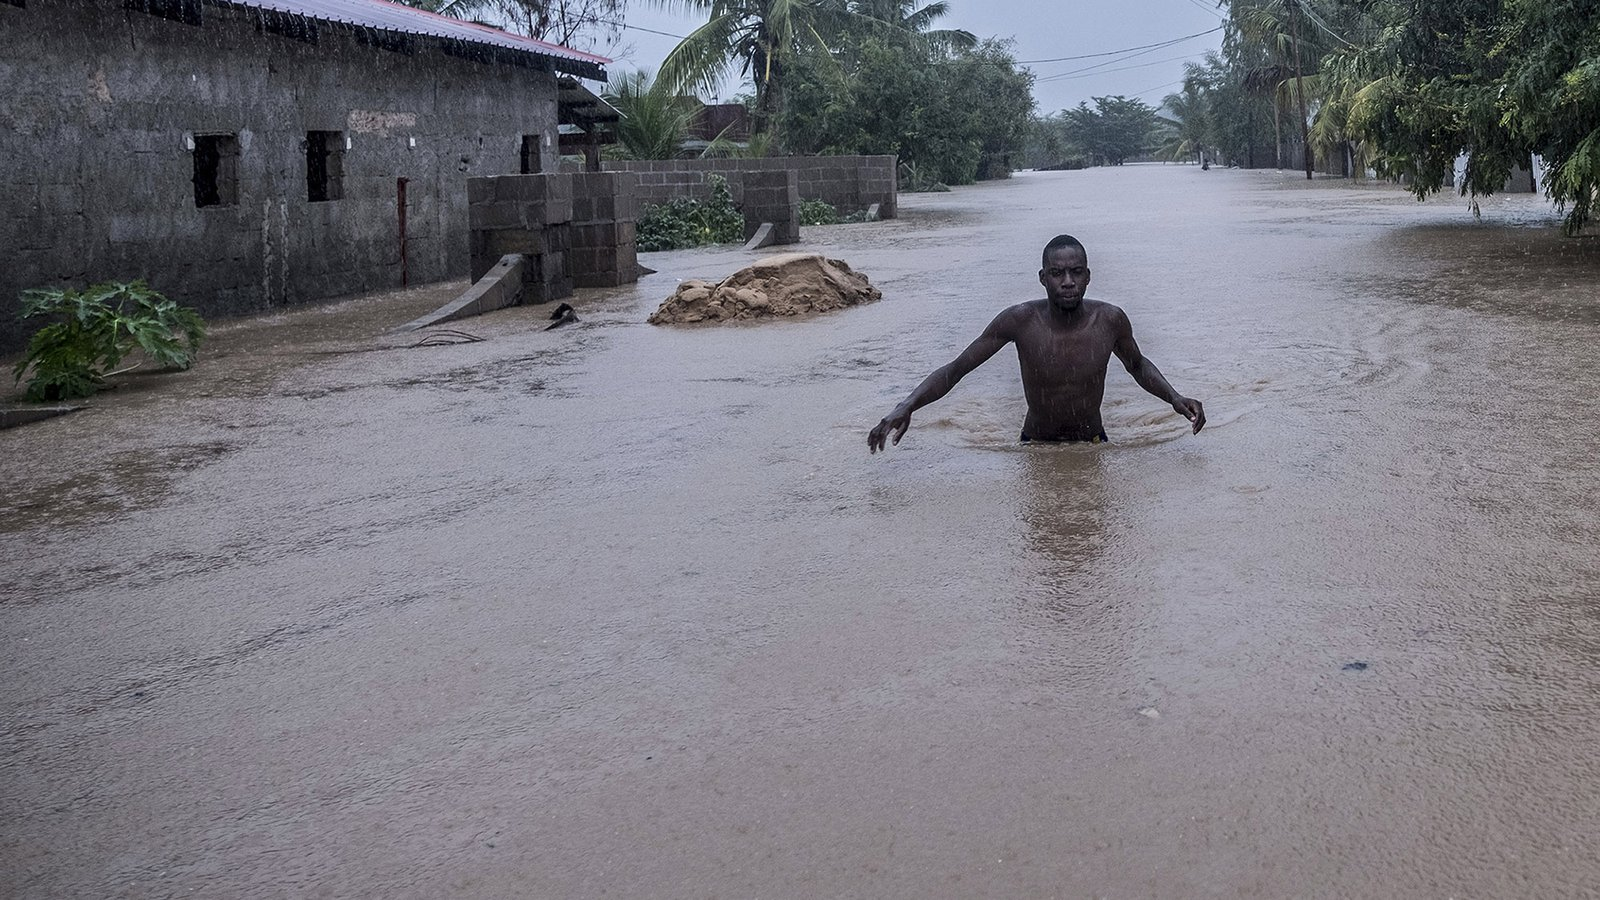 Flooding in Pemba, Mozambique.